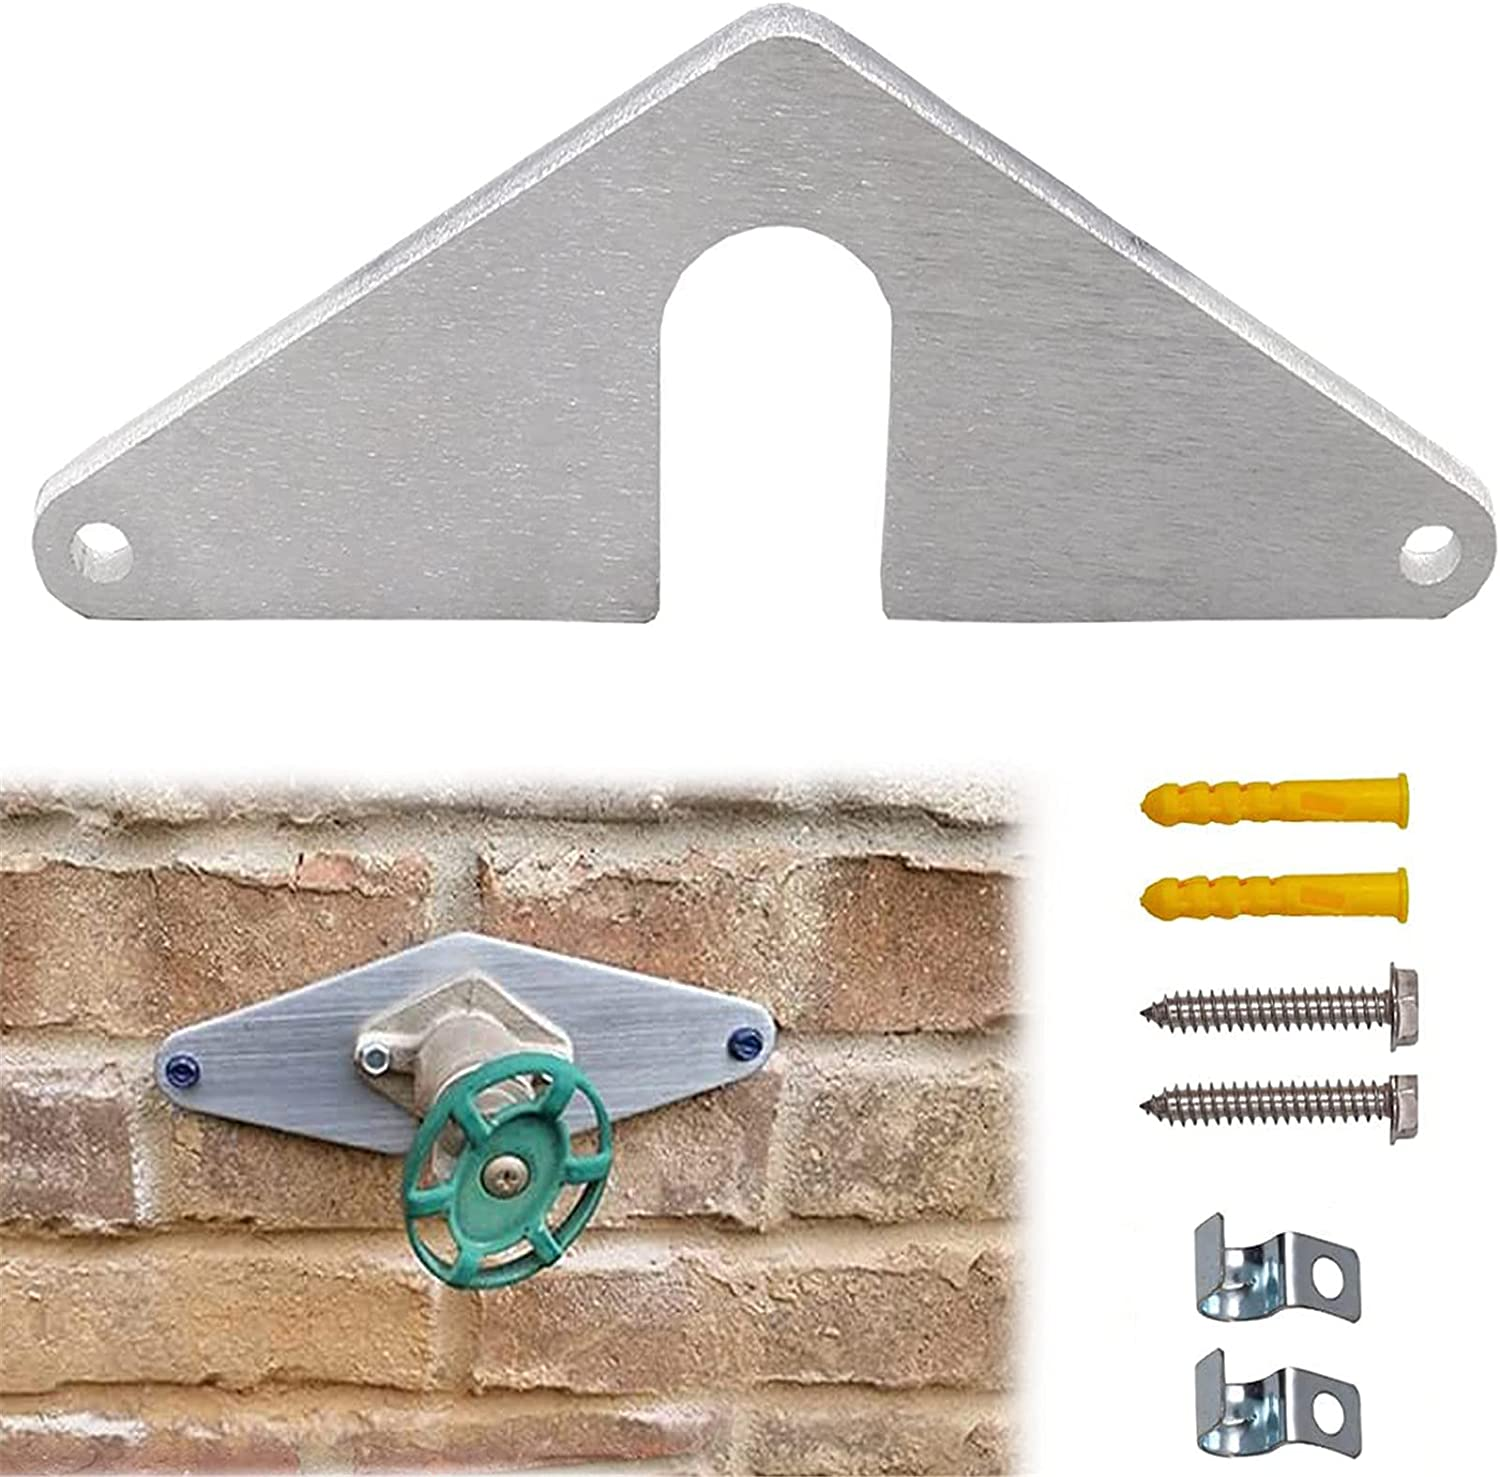 1 Set Hose Some reservation Bib unisex Mounting -Without Removing Plate Faucet